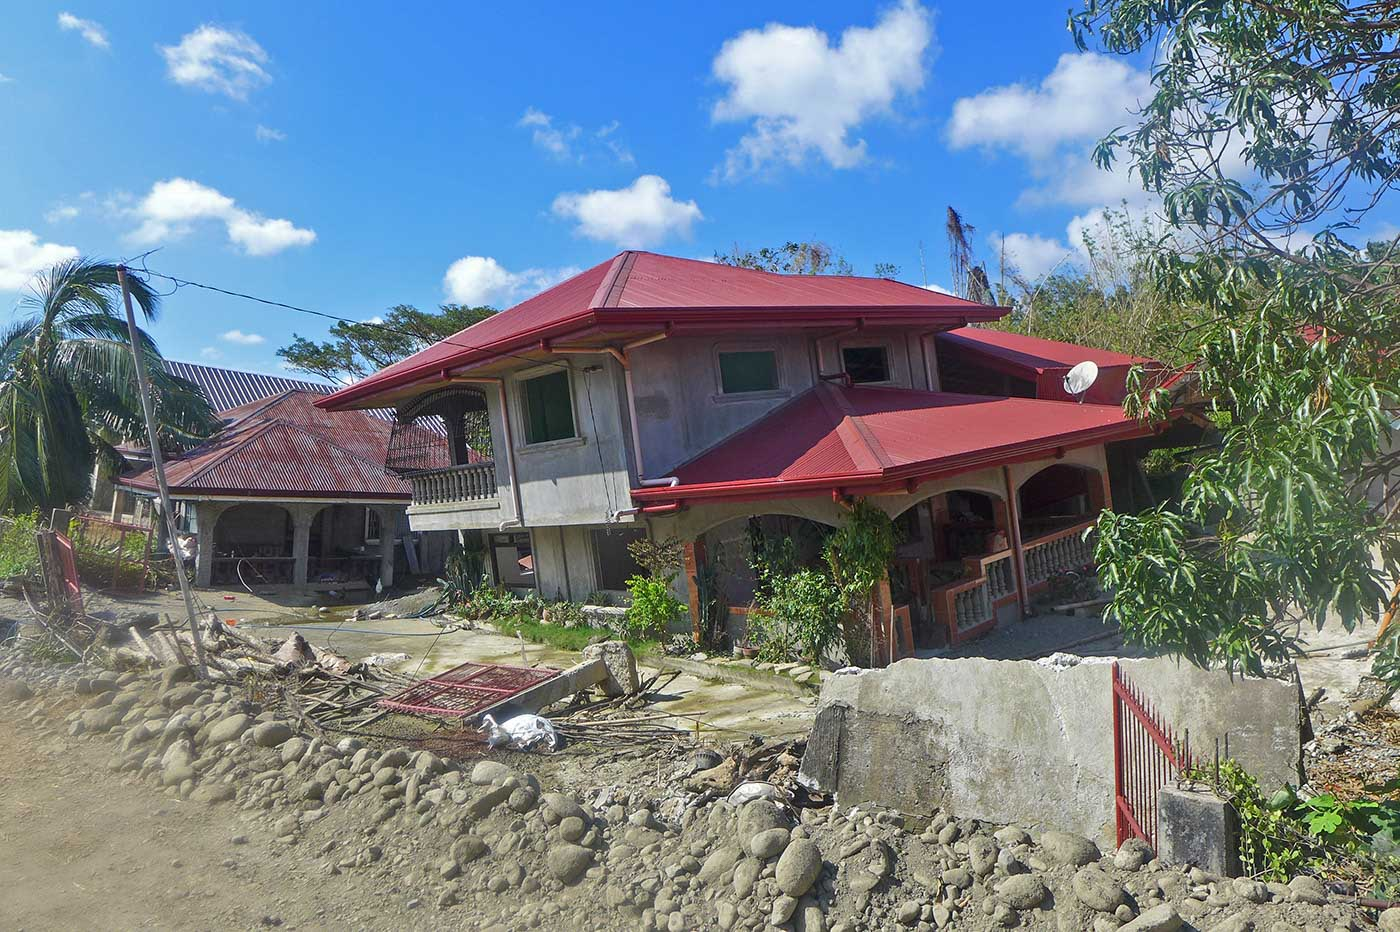 CRACKED. Houses in the upland village of Barangay Amguid in Ilocos Sur gradually rocked and cracked by continuous downpour during the month long monsoon rains last August. Photo by Mau Victa/Rappler